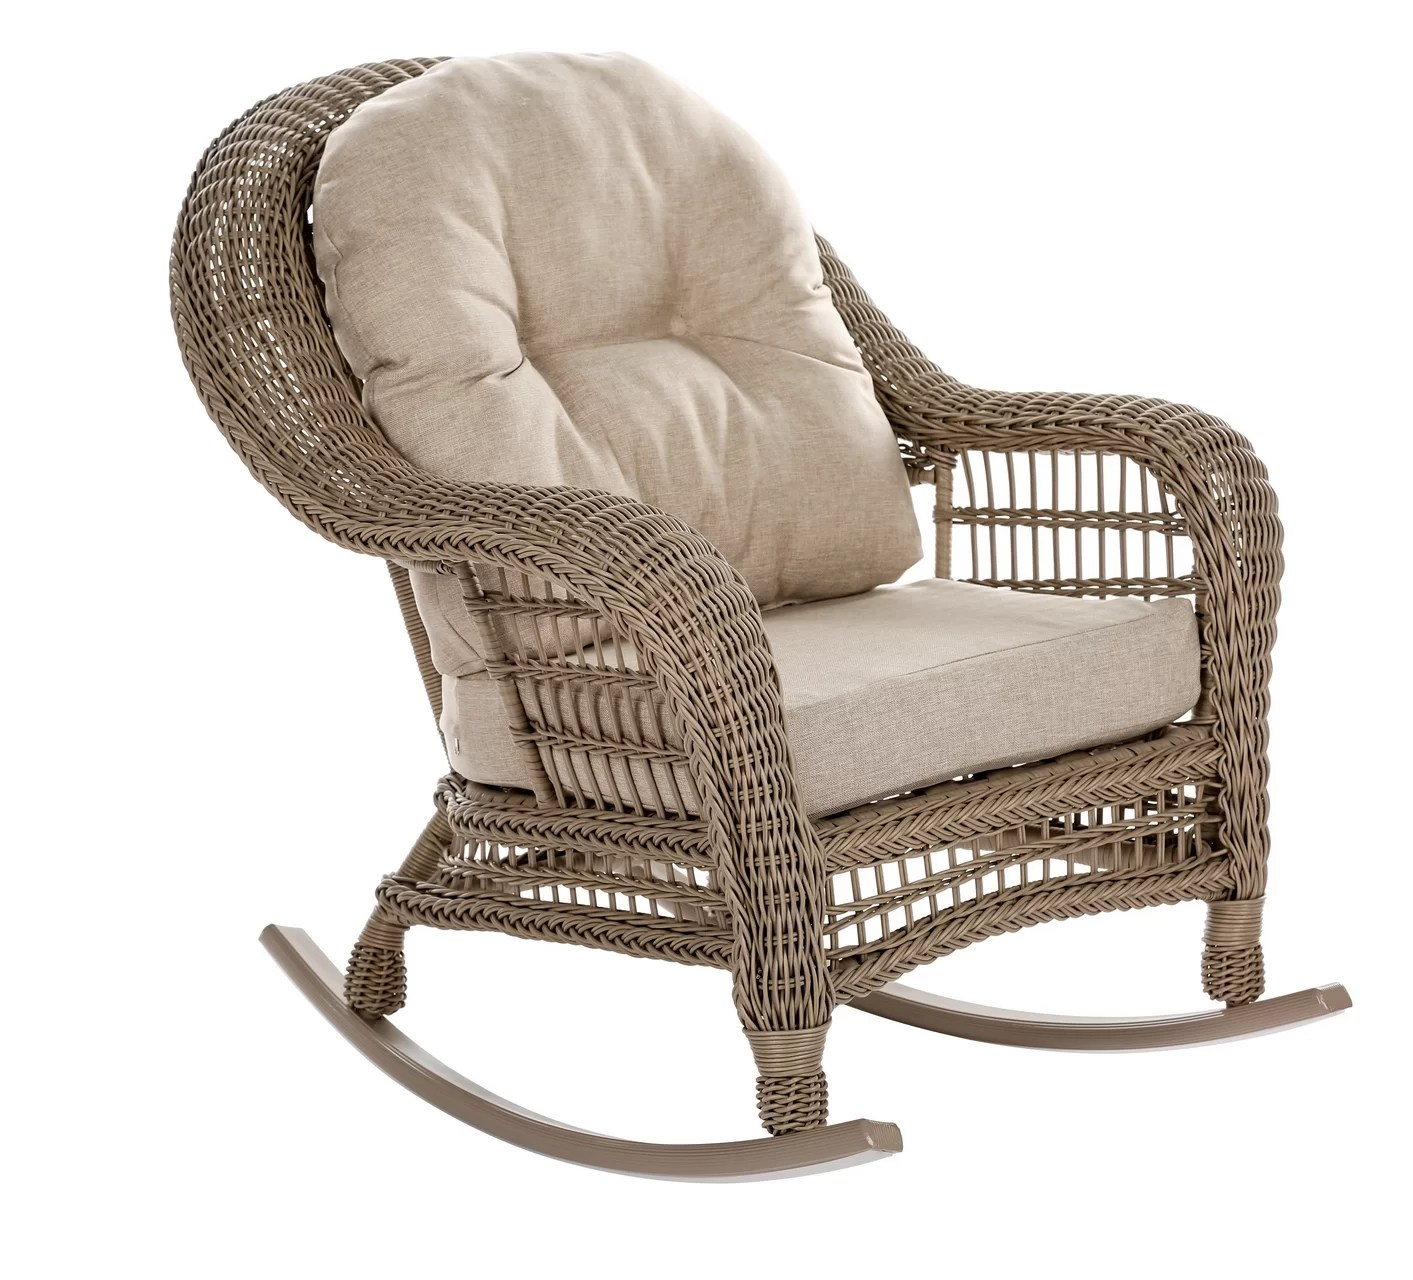 garden patio rocking chair with cushions